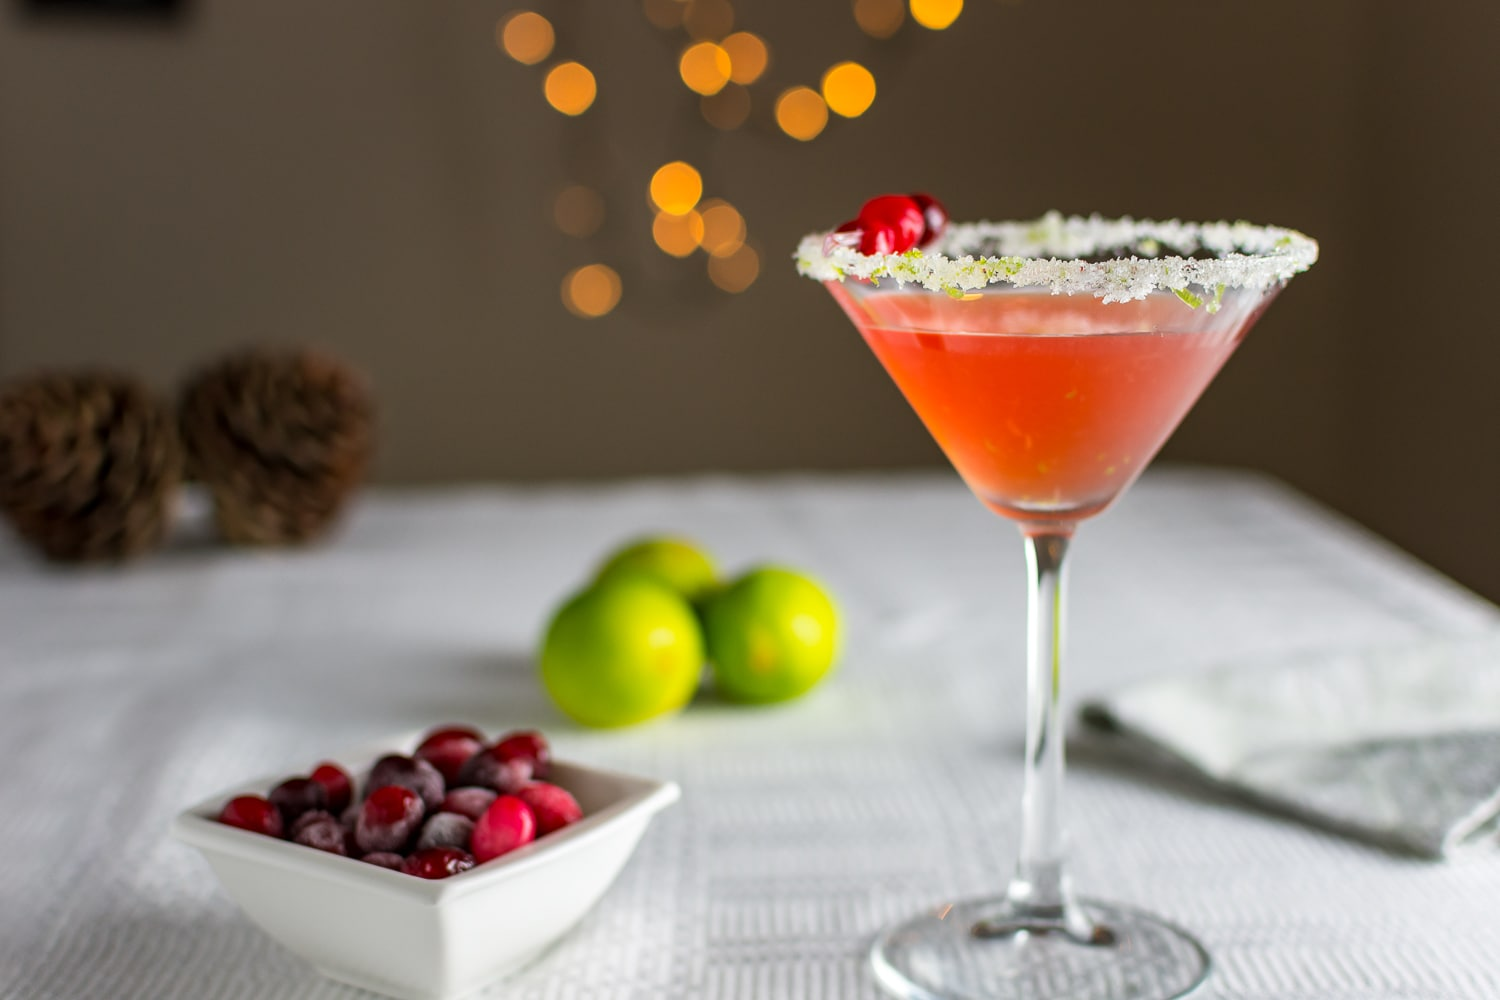 Cranberry and Brandy Cocktail